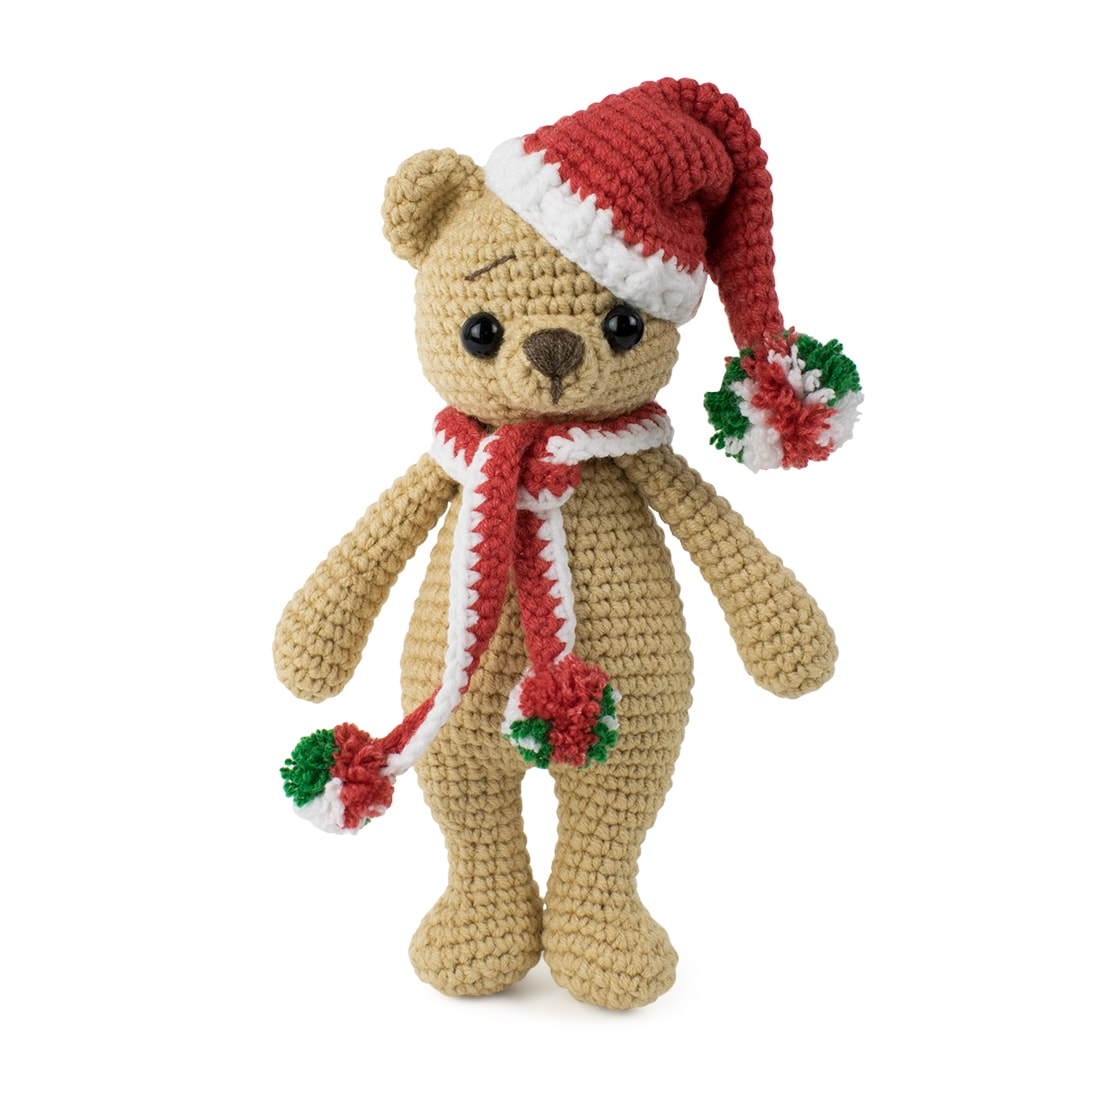 CROCHET BEAR AMIGURUMI PATTERN - Tiny Teddy Crochet Pattern Watch ... | 1100x1100